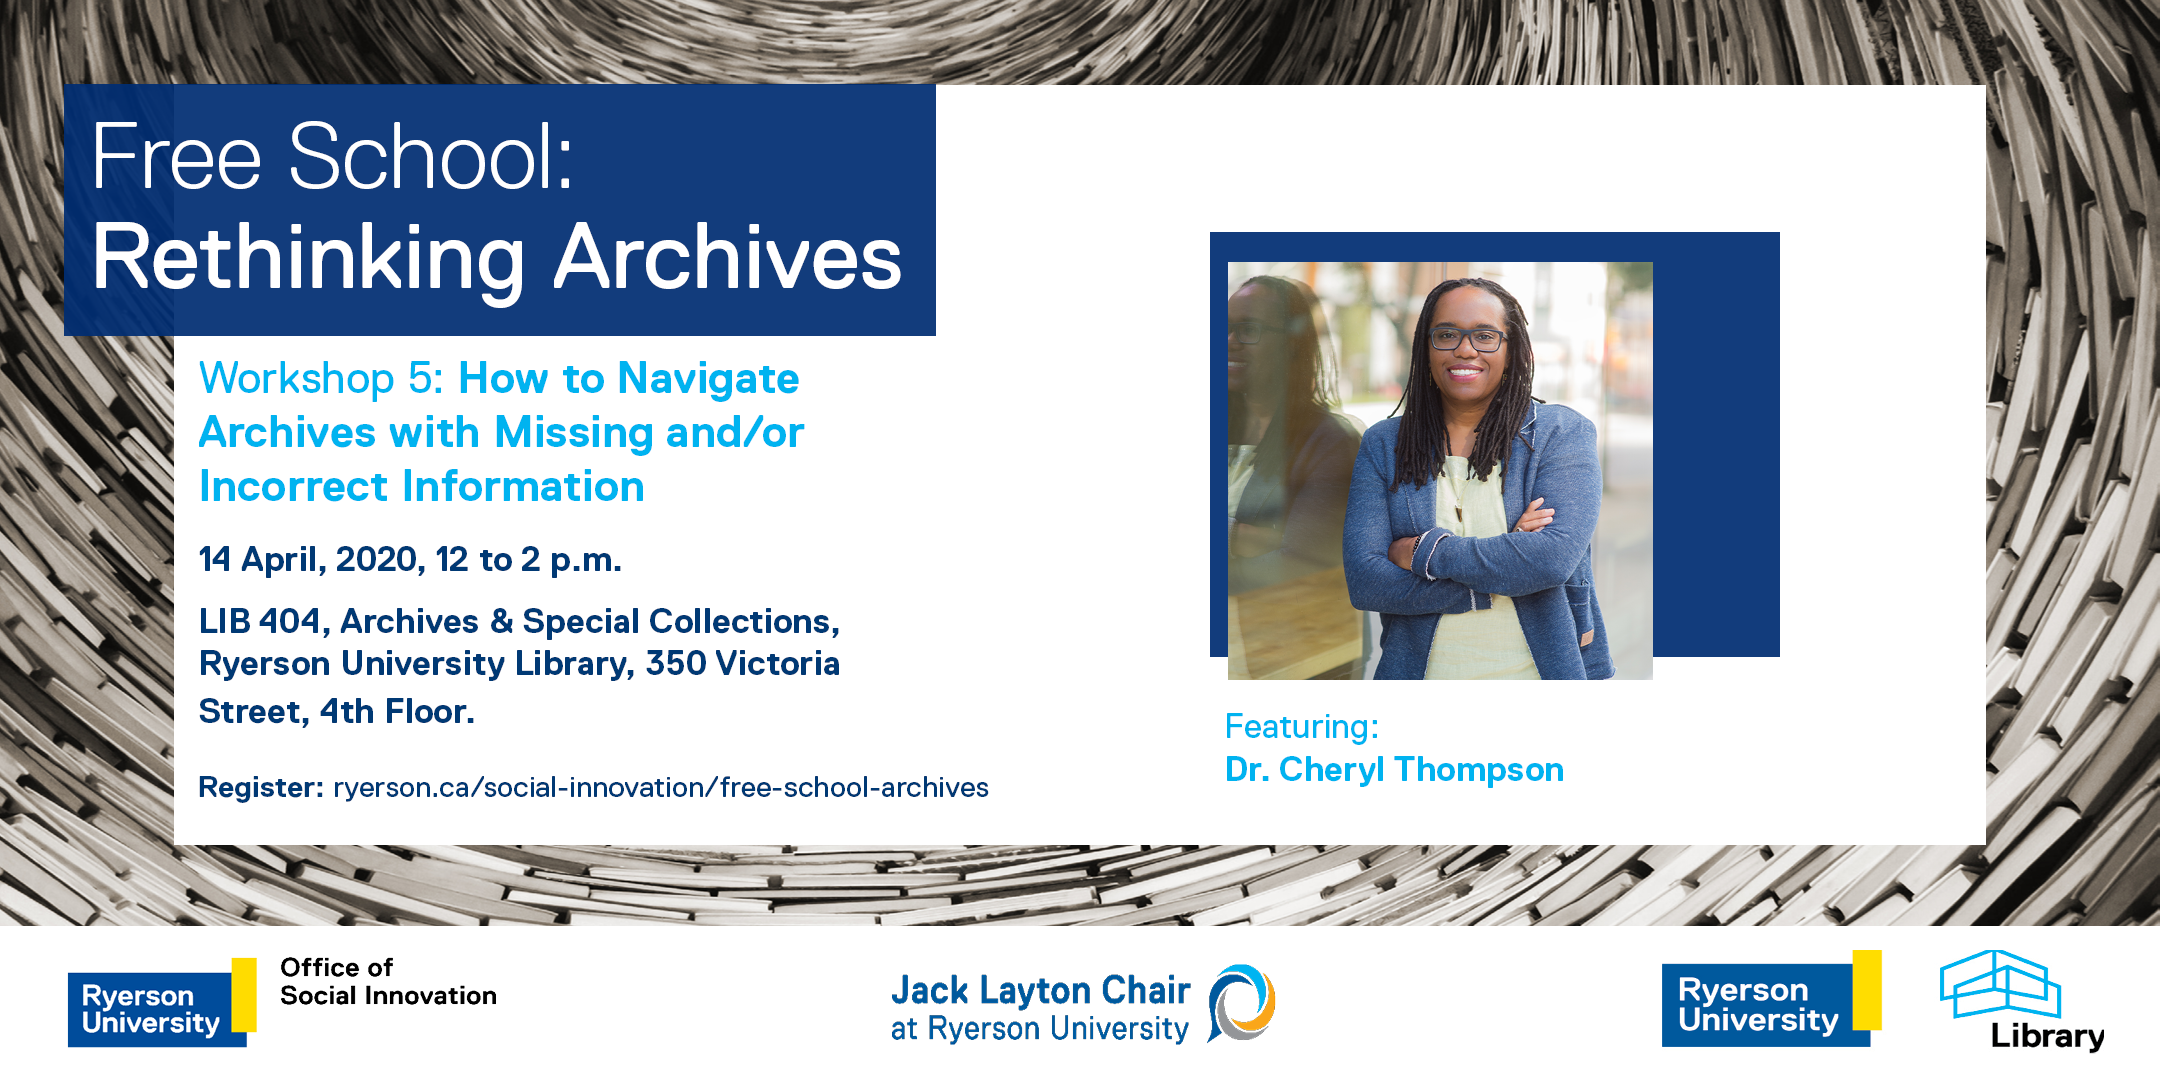 Free School - Workshop 5: How to Navigate Archives with Missing Info